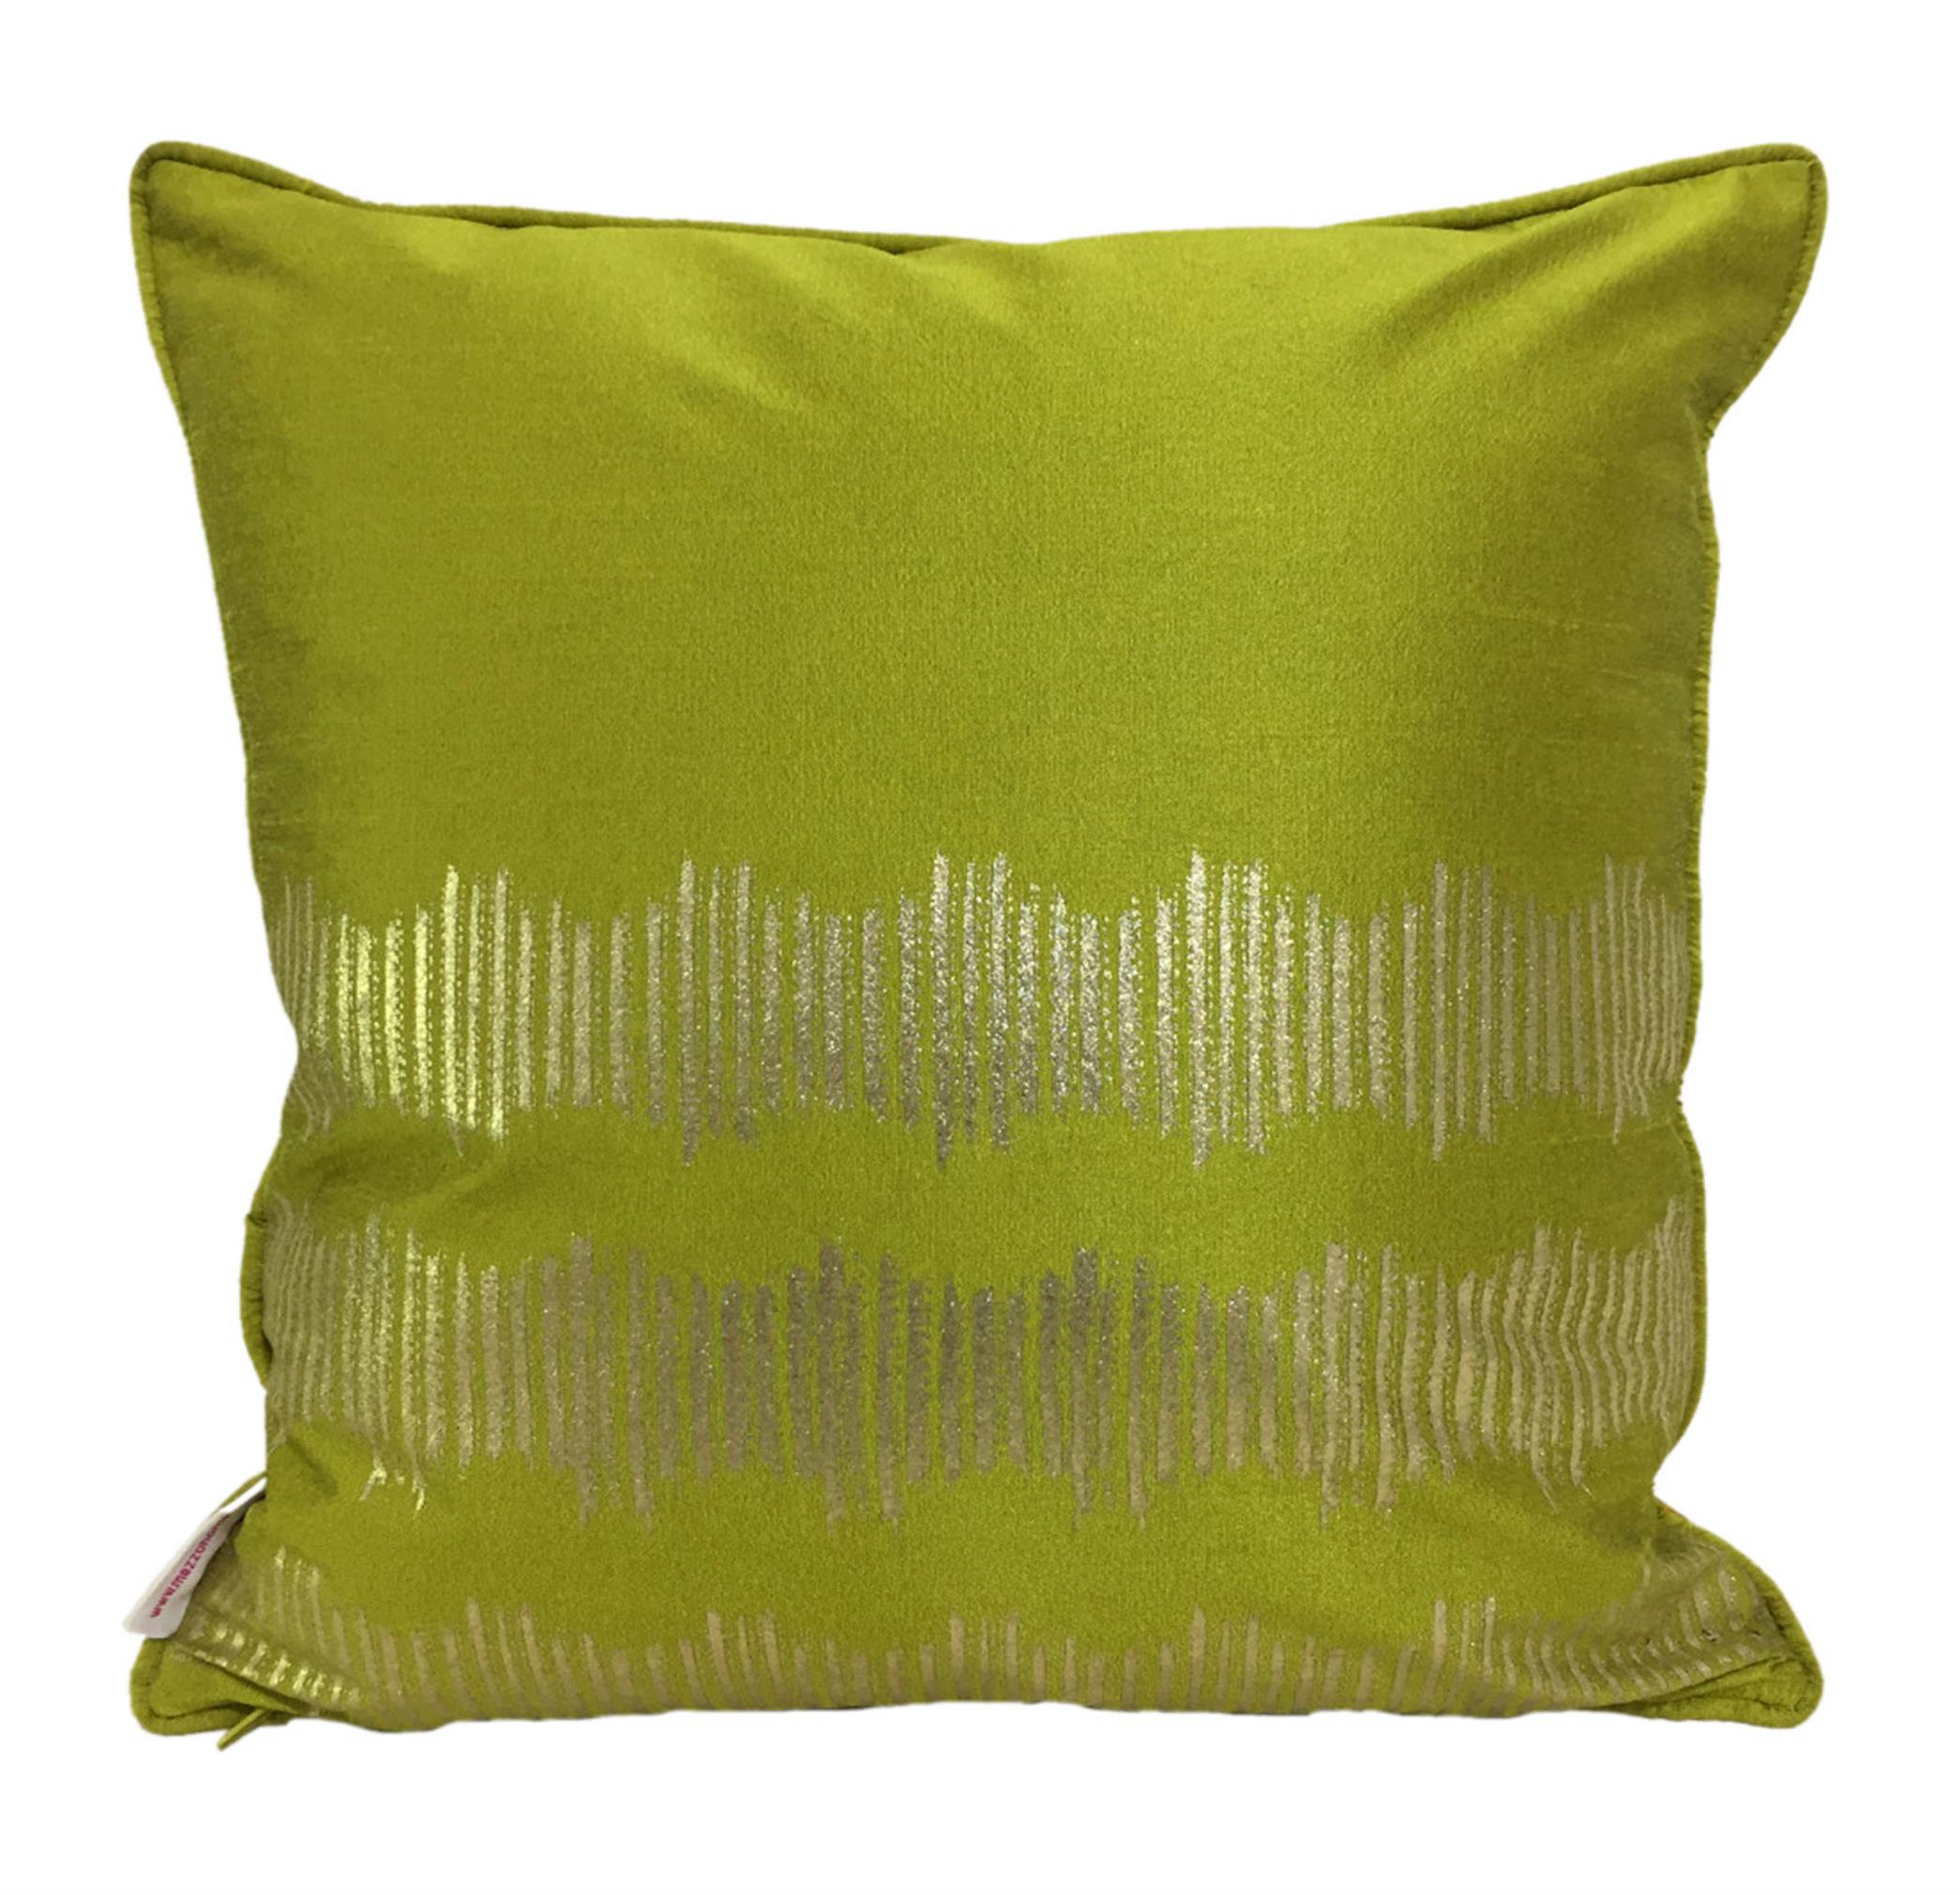 Double Sided Mustard Gold Lotus Cushion Cover